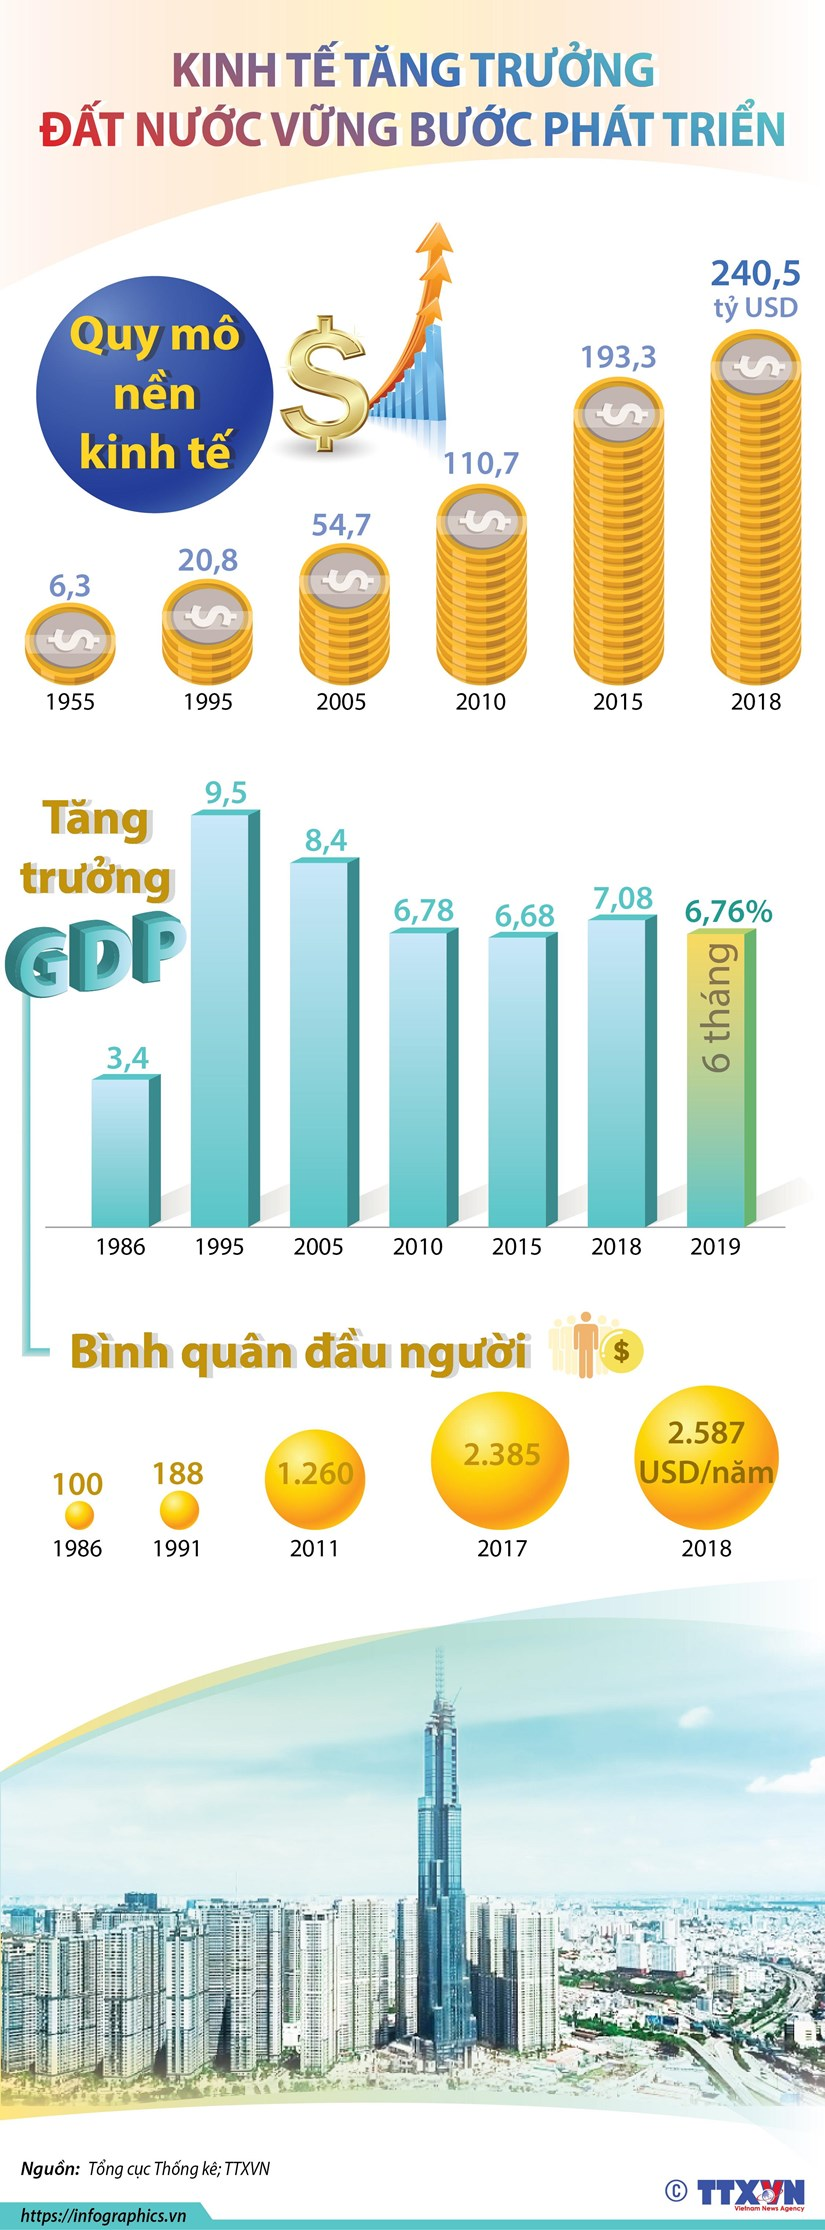 [Infographics] Kinh te tang truong, dat nuoc vung buoc phat trien hinh anh 1